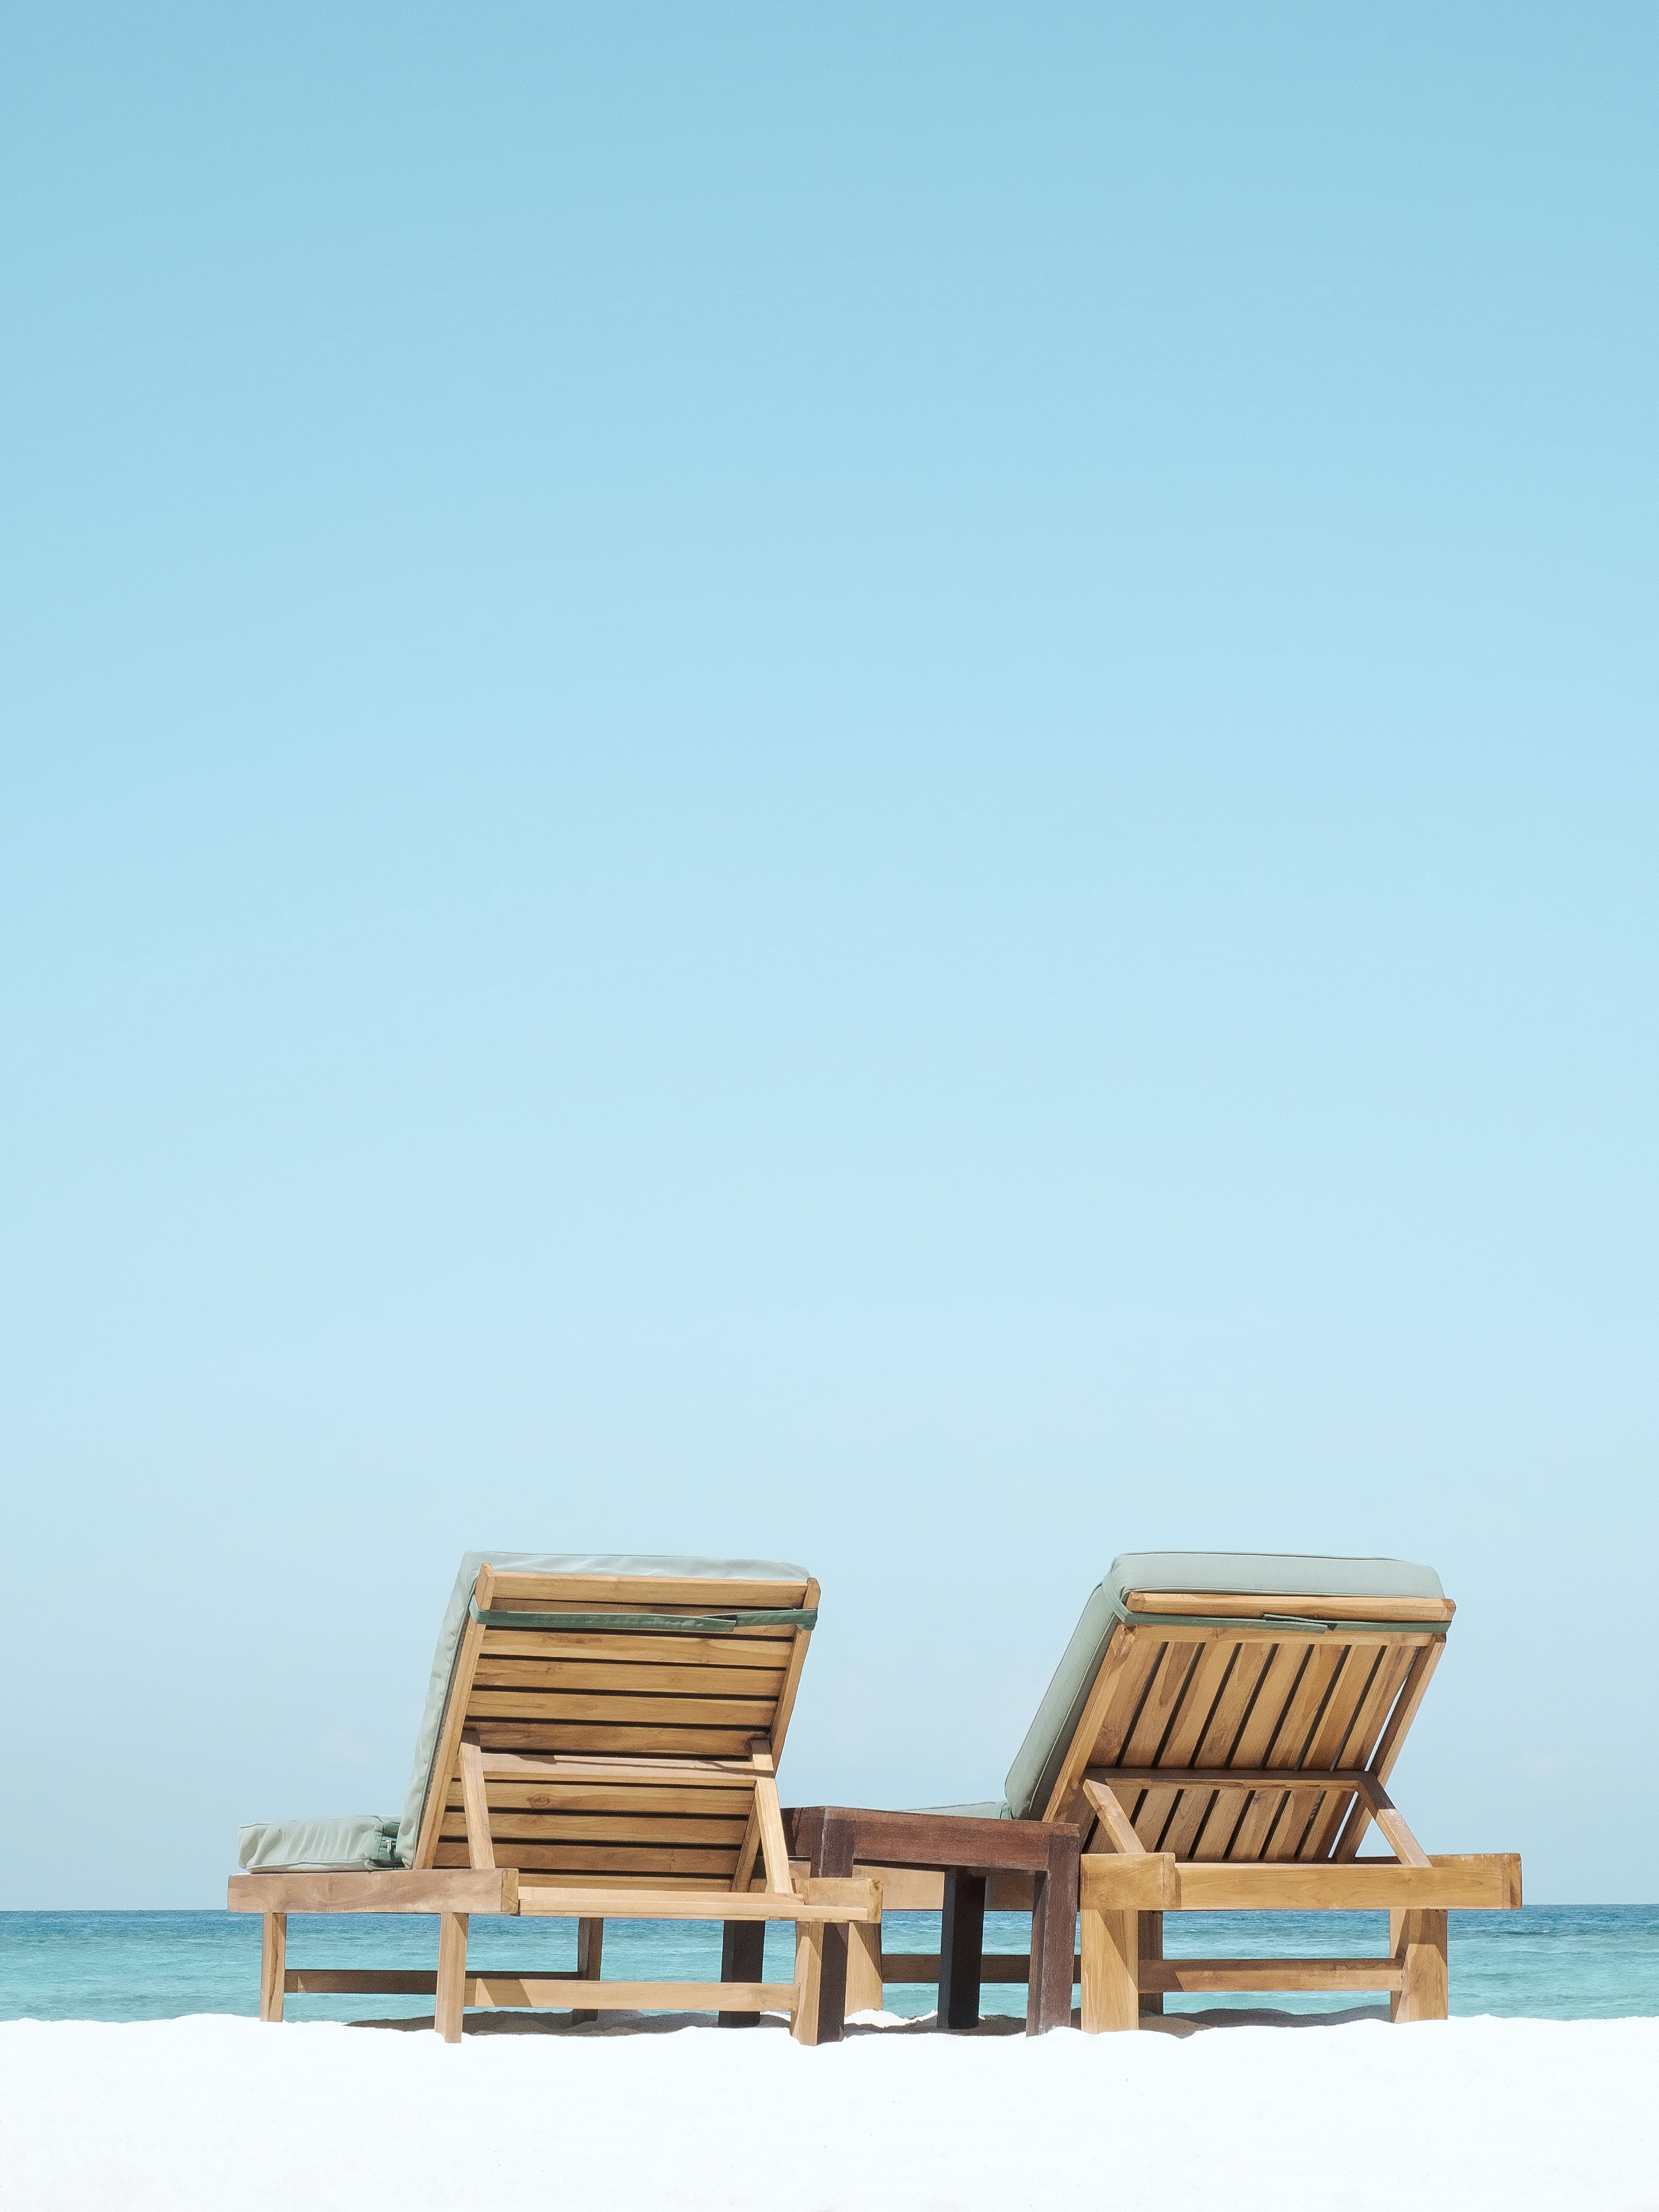 two brown wooden outdoor chaise loungers on beach